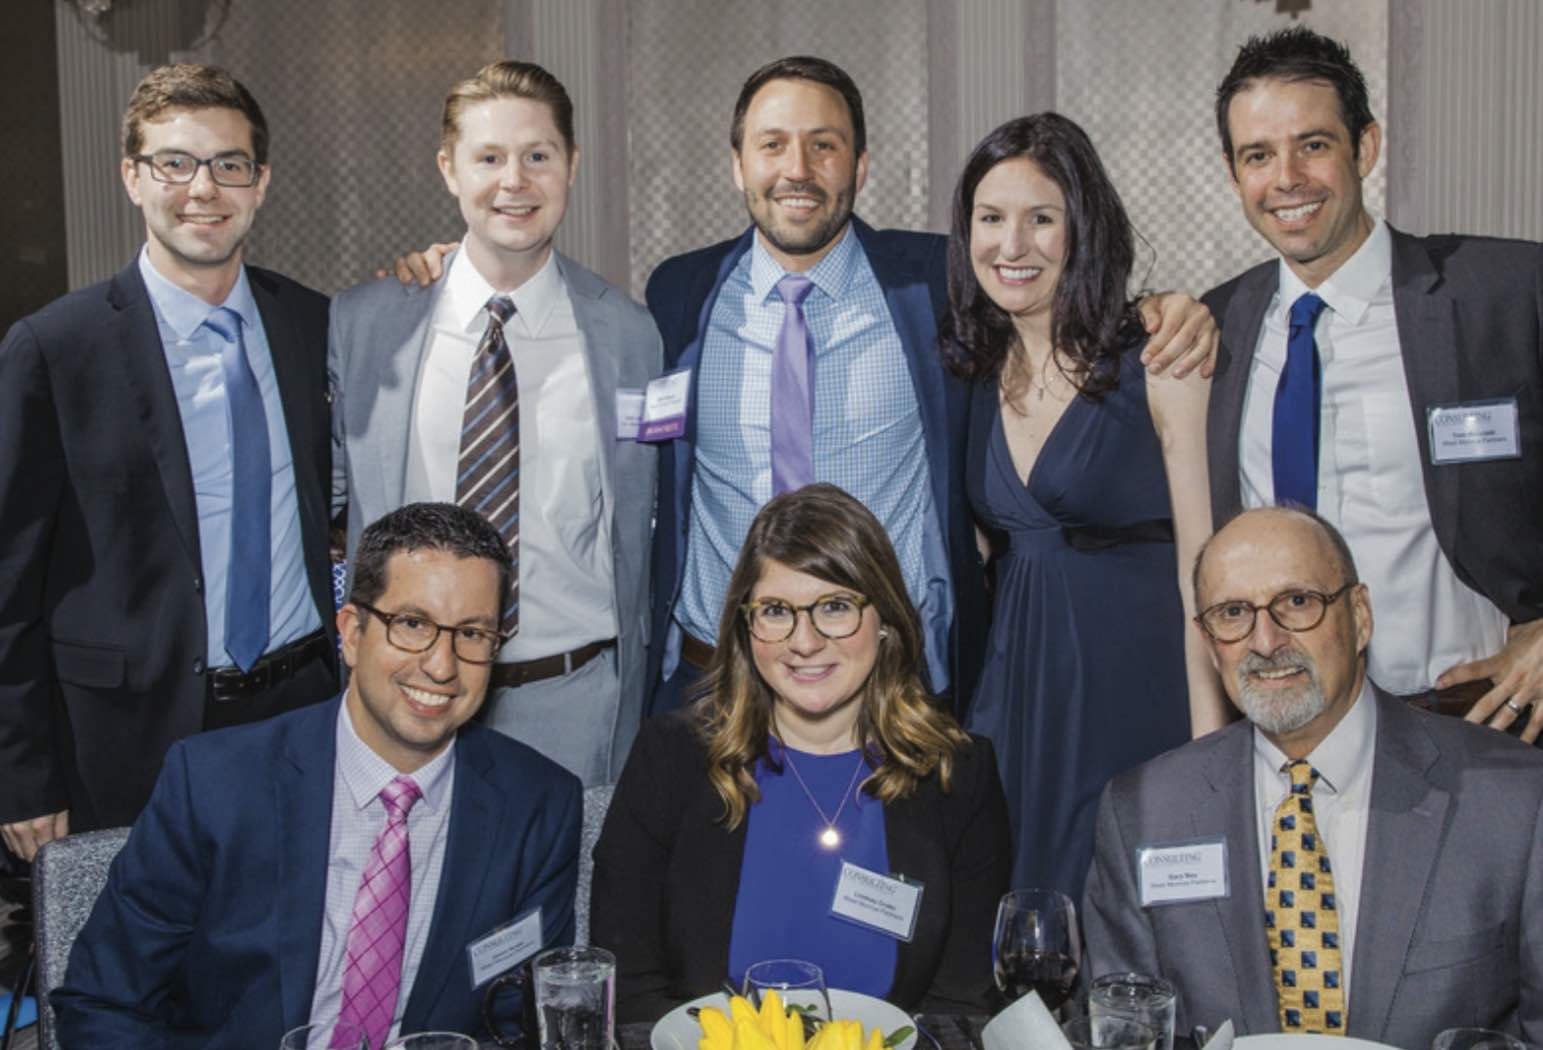 <a href=&quot;https://www.eiseverywhere.com/ehome/227516&quot;>What's Next? The 2017 Rising Stars of the Profession Gala: Thursday, April 27, W Chicago City Center</a>